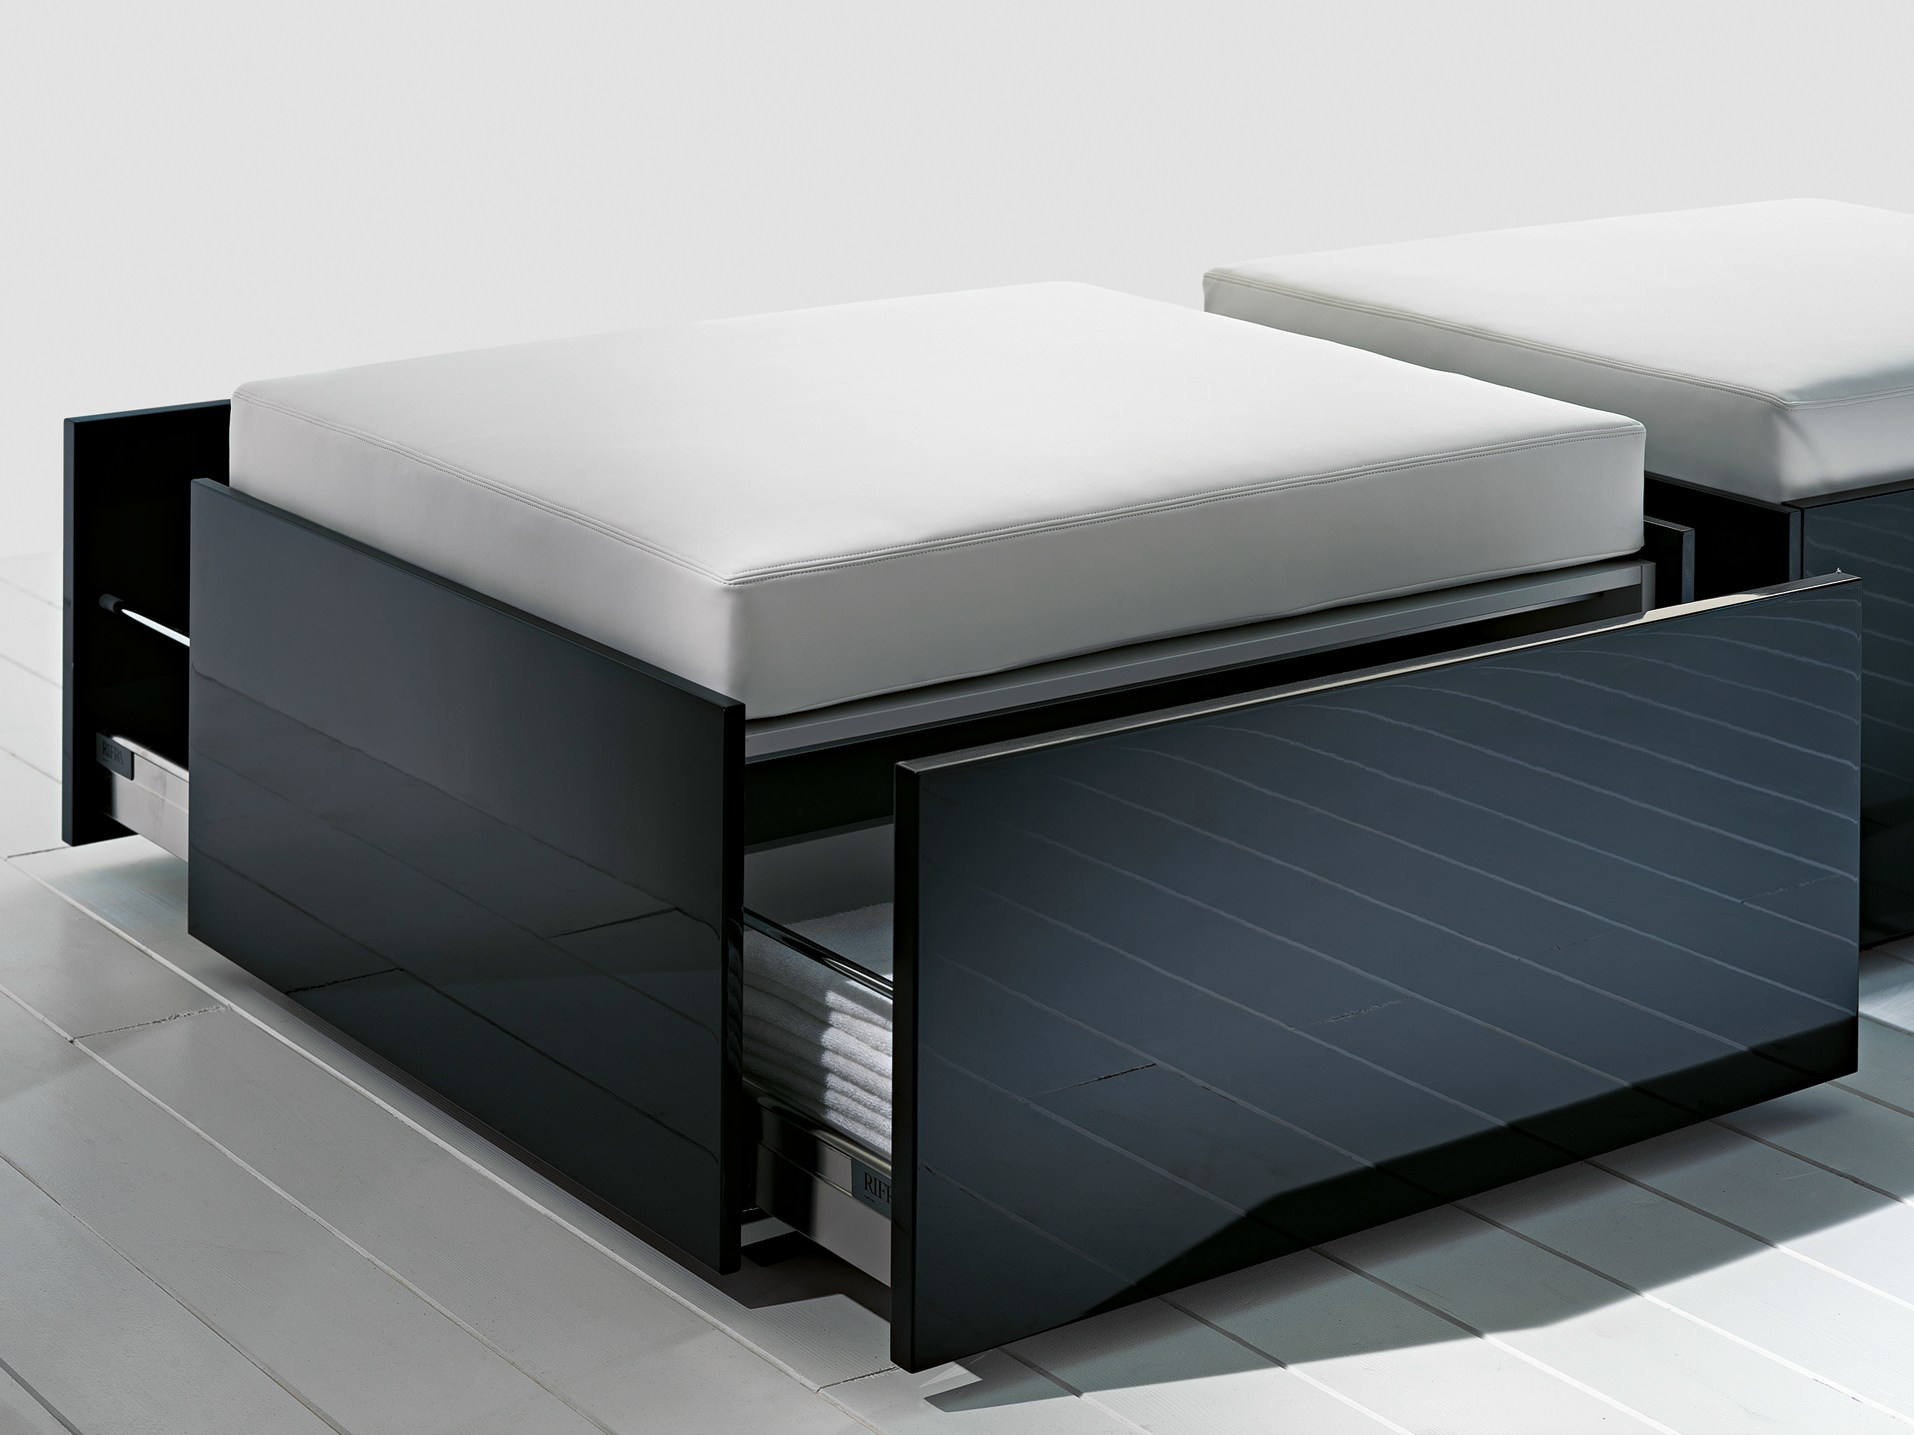 pouf contenitore collezione less by rifra design. Black Bedroom Furniture Sets. Home Design Ideas